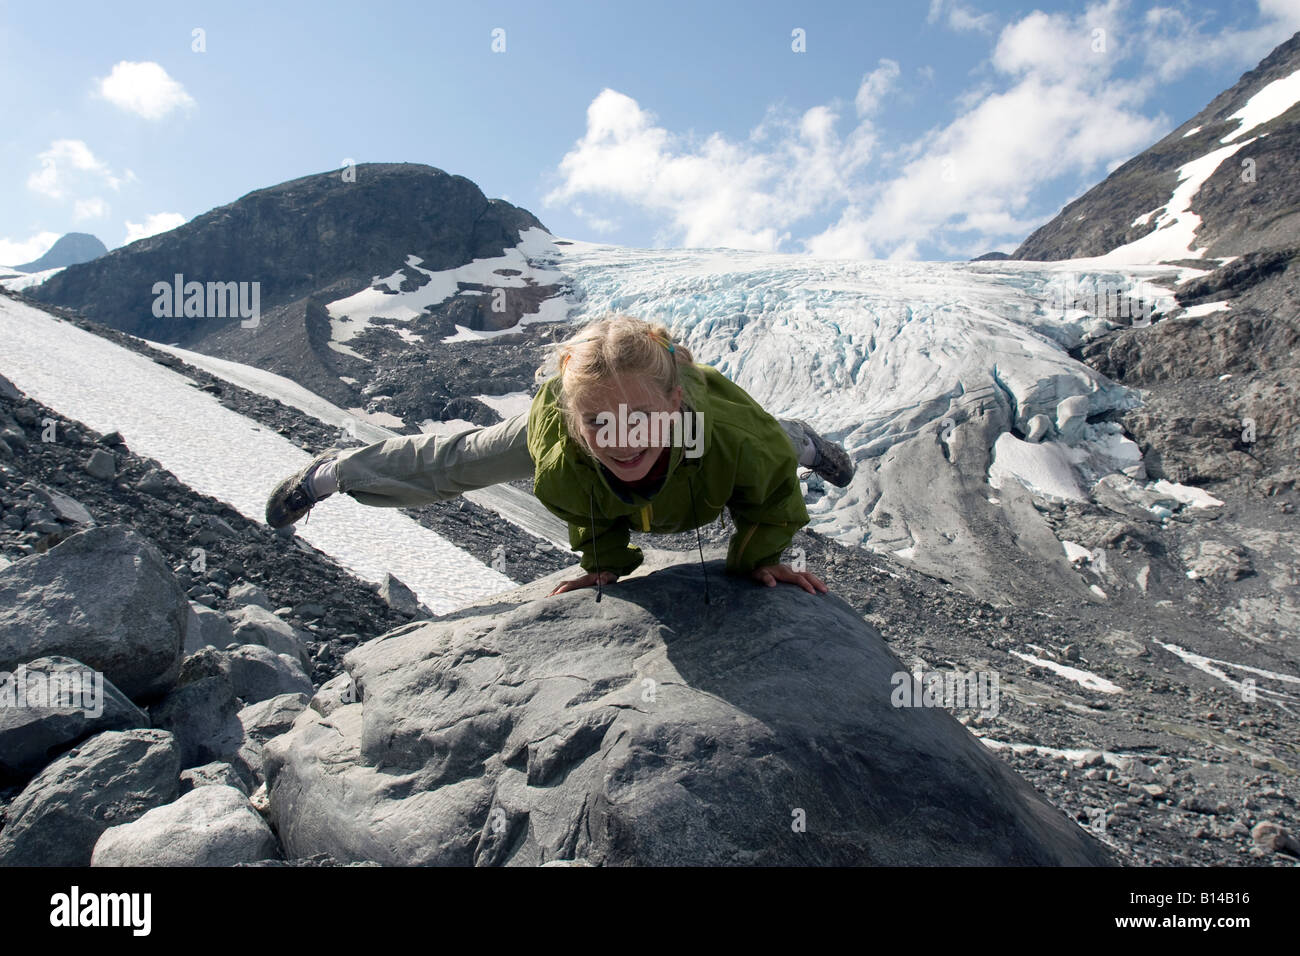 Eight year old blond girl performing acrobatic gymnastics in front of glacier at Jotunheimen in Norway Stock Photo